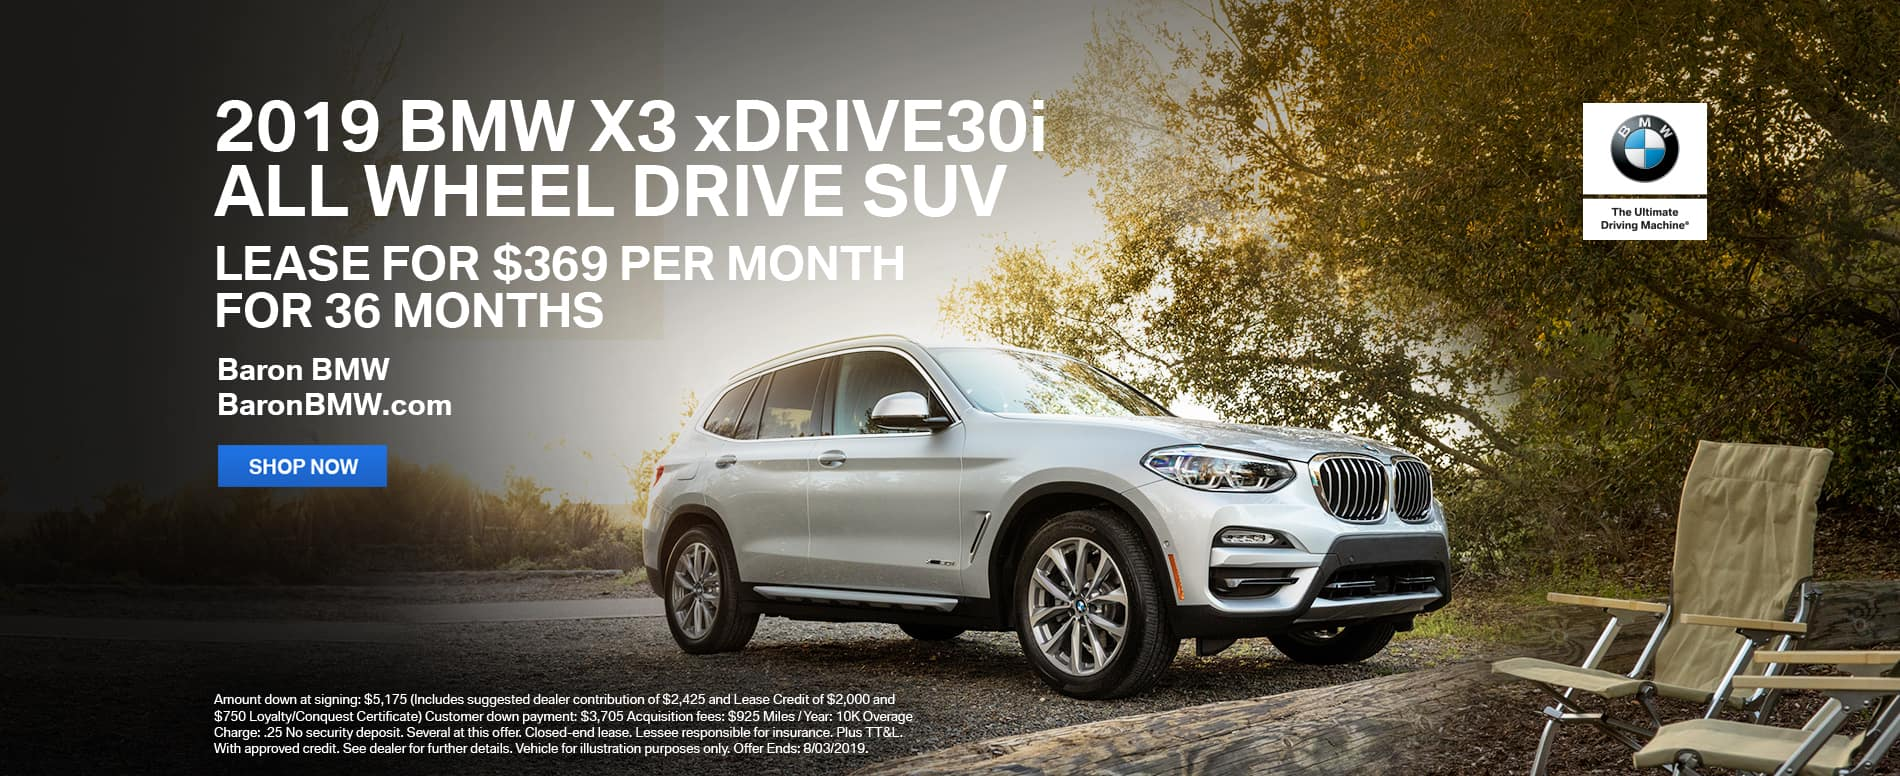 lease-2019-bmw-x3-xdrive30i-awd-suv-baron